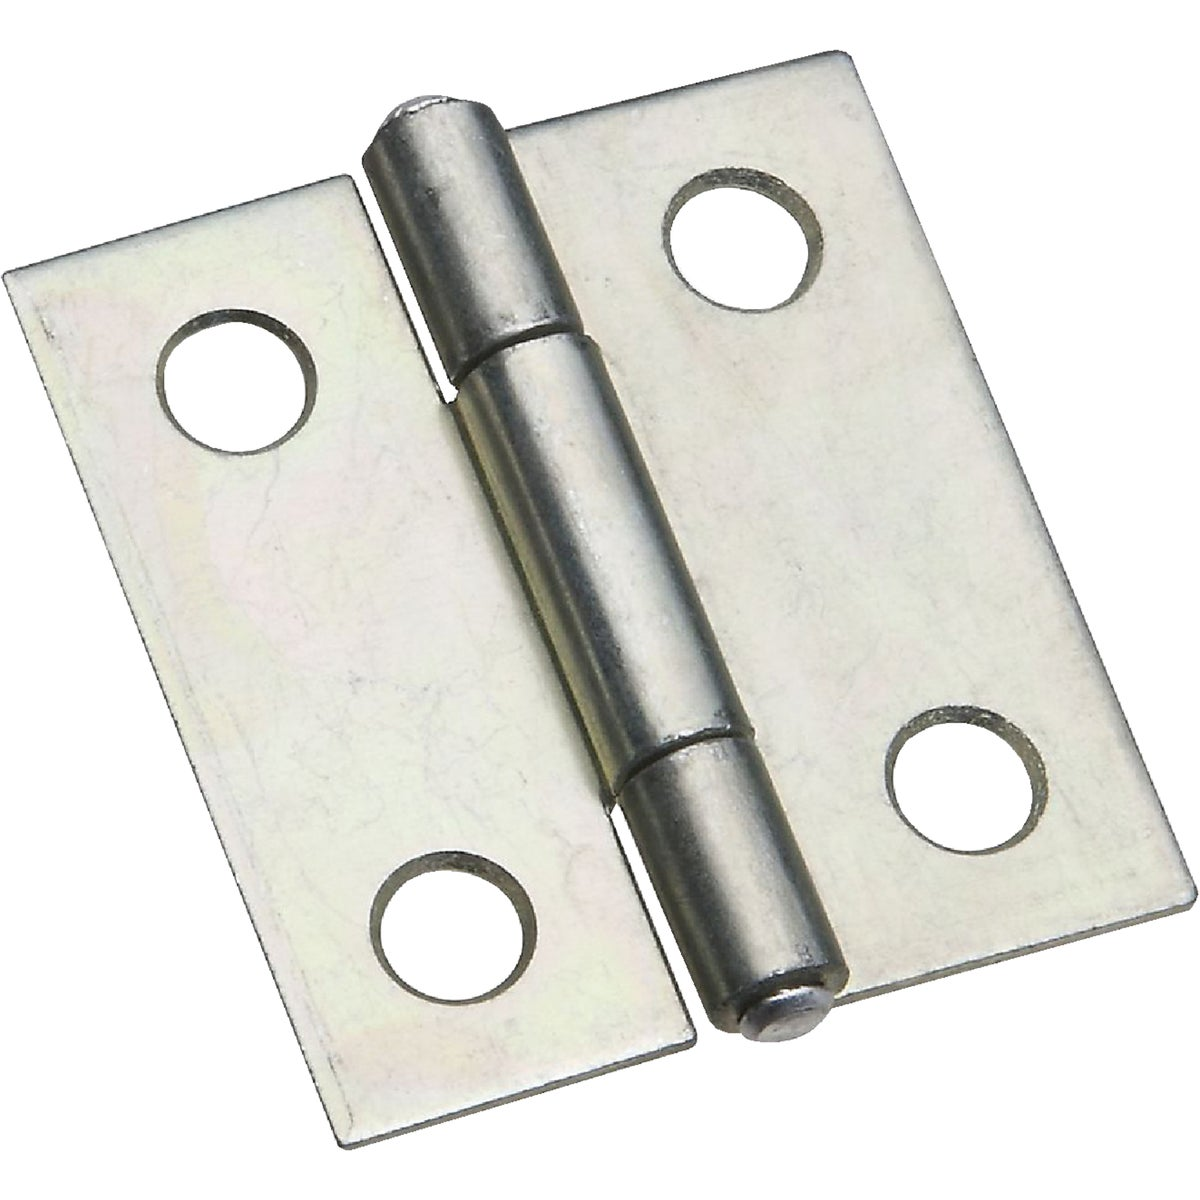 "1-1/2"" ZINC PIN HINGE - N146043 by National Mfg Co"